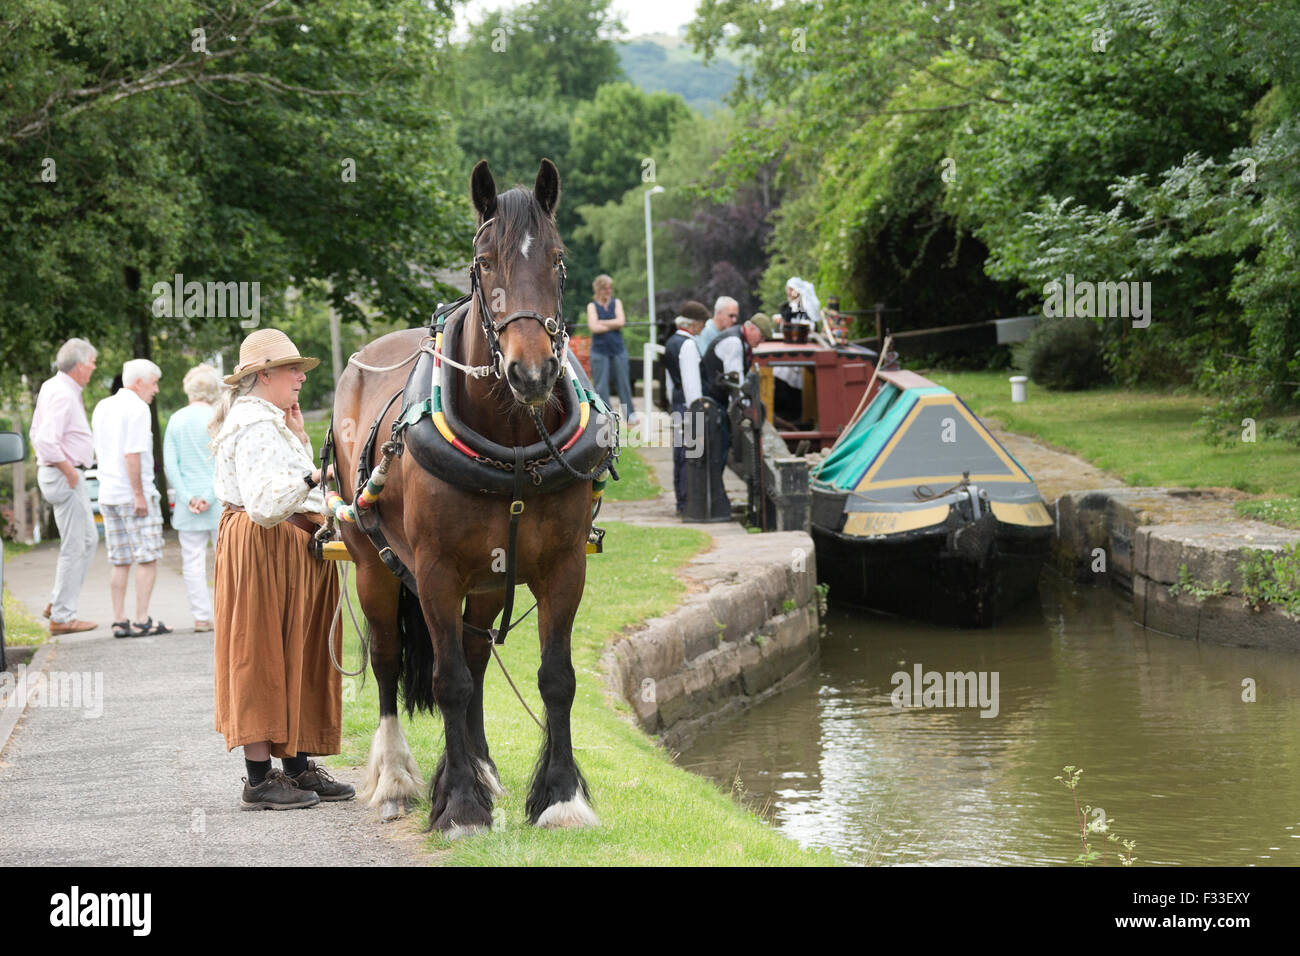 Horse Tow Boat Narrow Coal Stock Photos Harness England English Europe Image